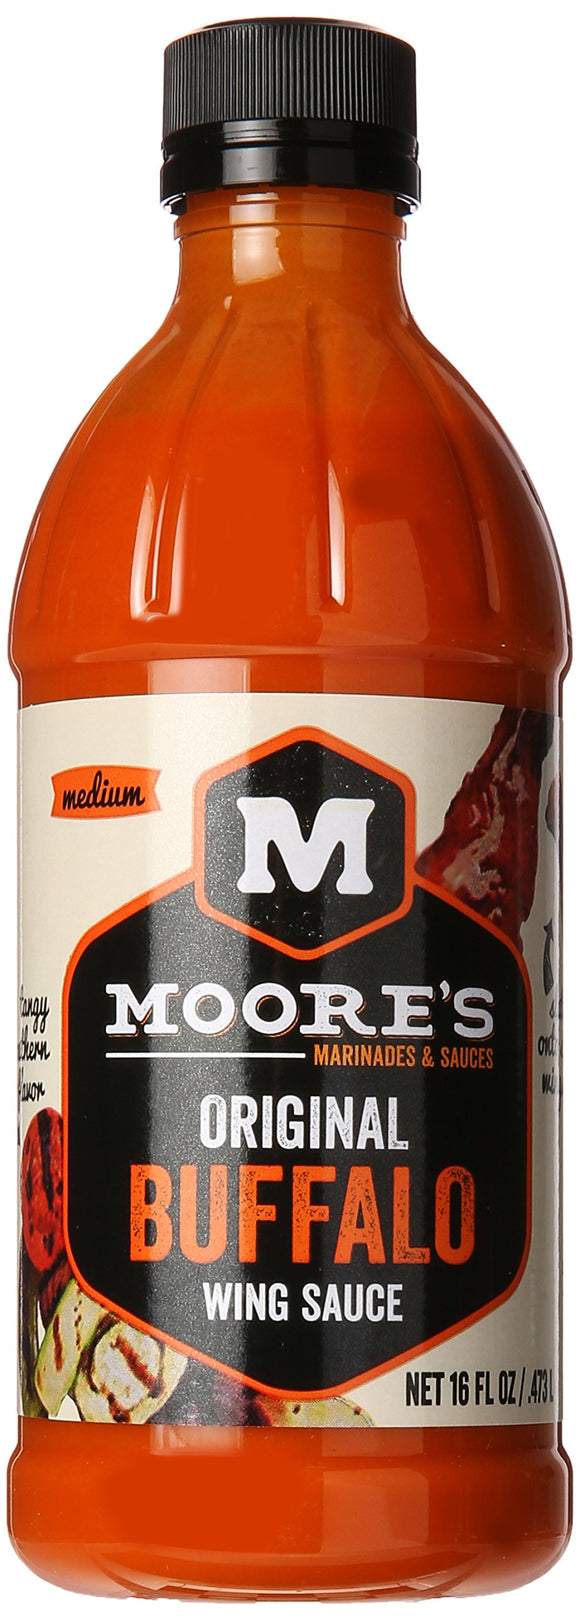 [product_id] - Buffalo Wing, Gravies & Marinades, Grocery, Grocery & Gourmet Food, Moore's, Pantry Staples, Sauces - Wellica